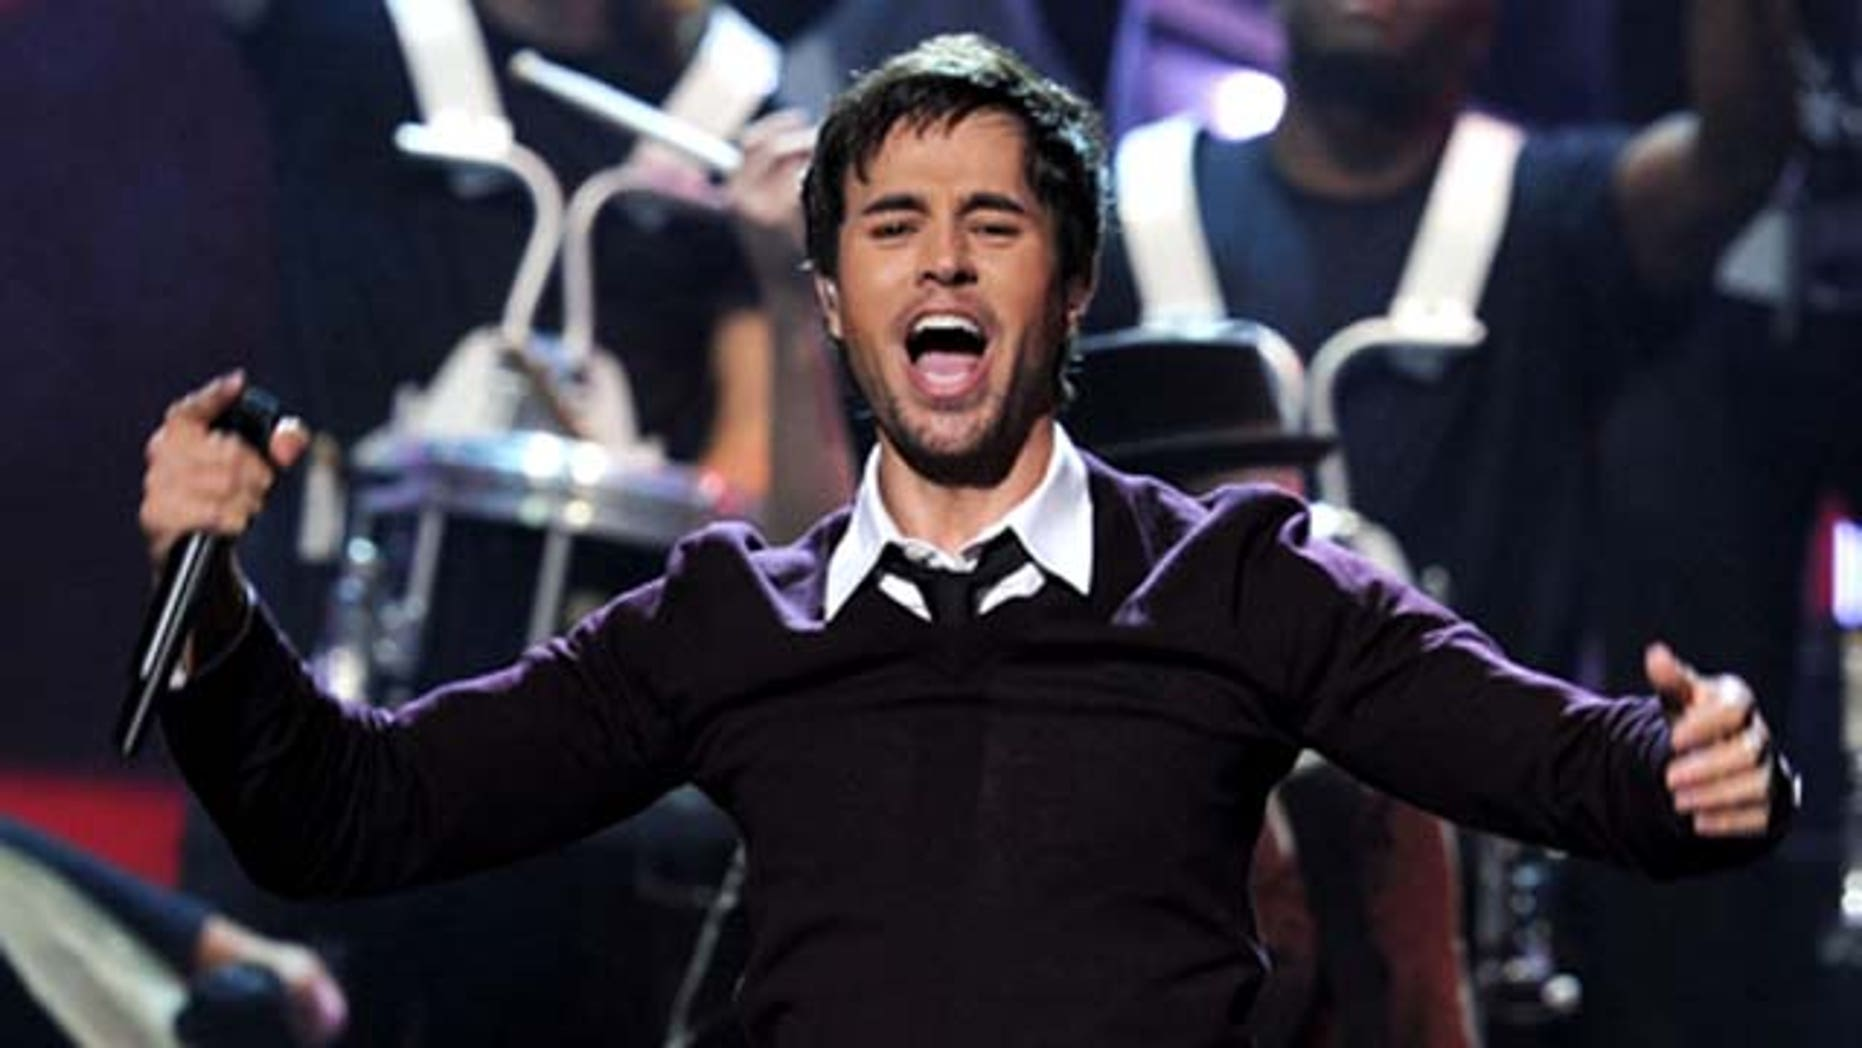 onstage during the 11th annual Latin GRAMMY Awards at the Mandalay Bay Events Center on November 11, 2010 in Las Vegas, Nevada.